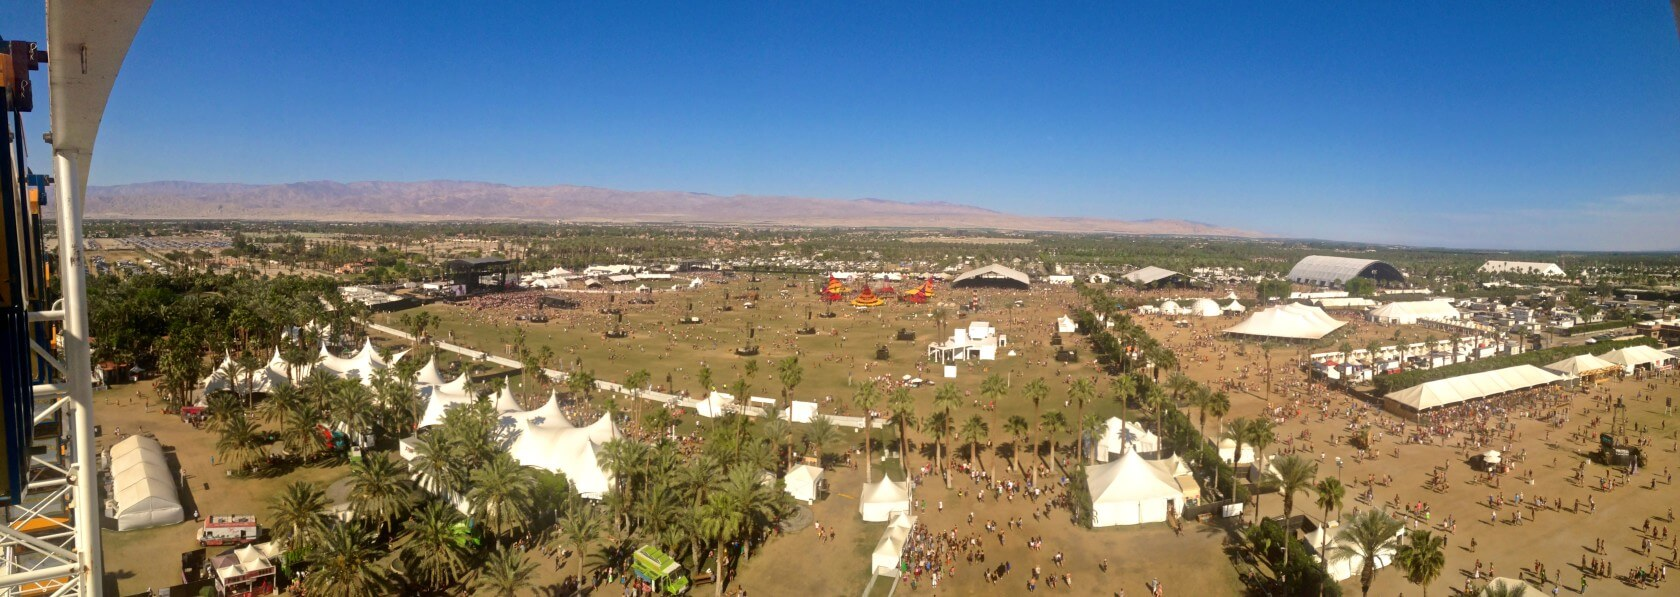 coachella festival guide ferris wheel